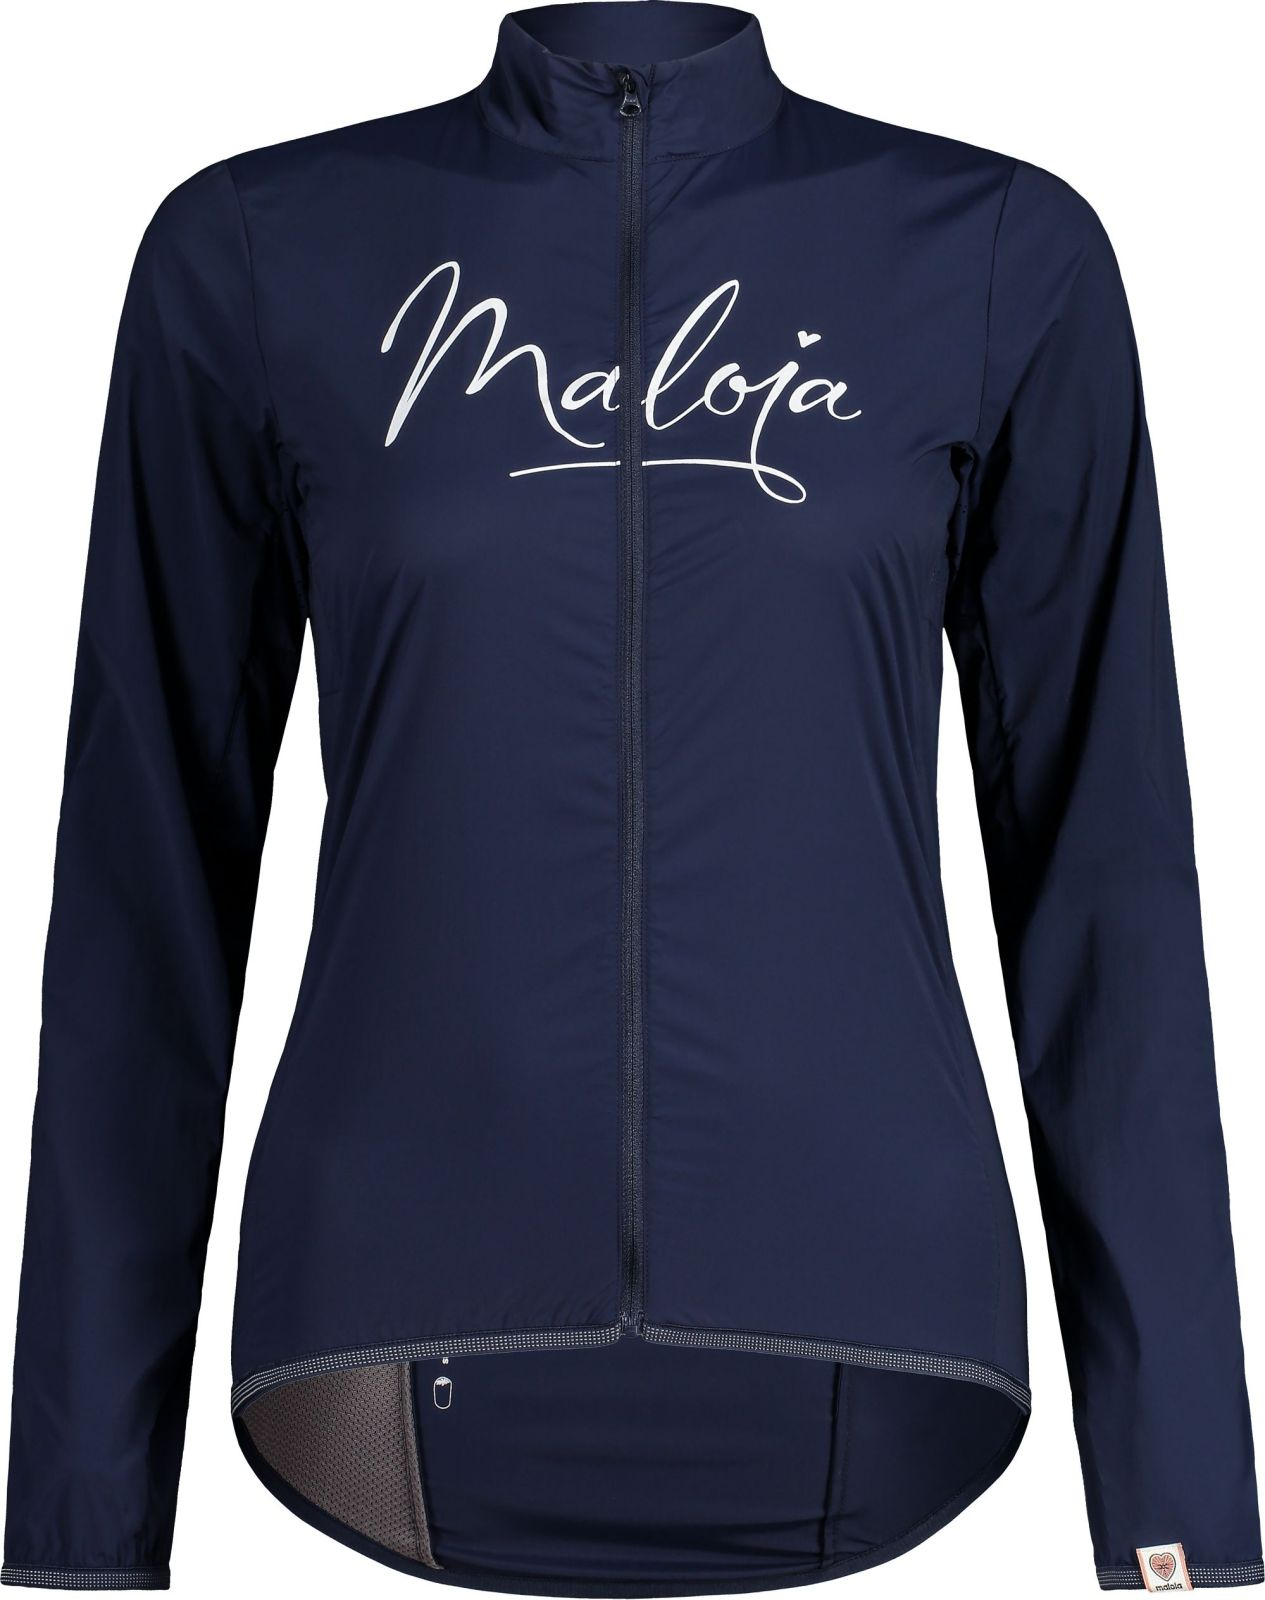 Maloja EvaM. Jacket - night sky XL